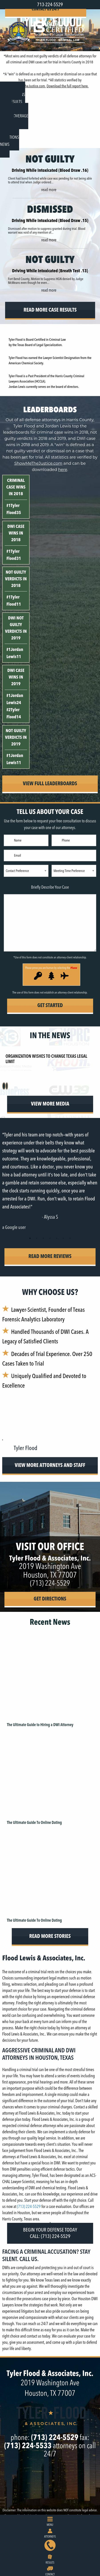 Tyler Flood & Associates - Houston TX Lawyers